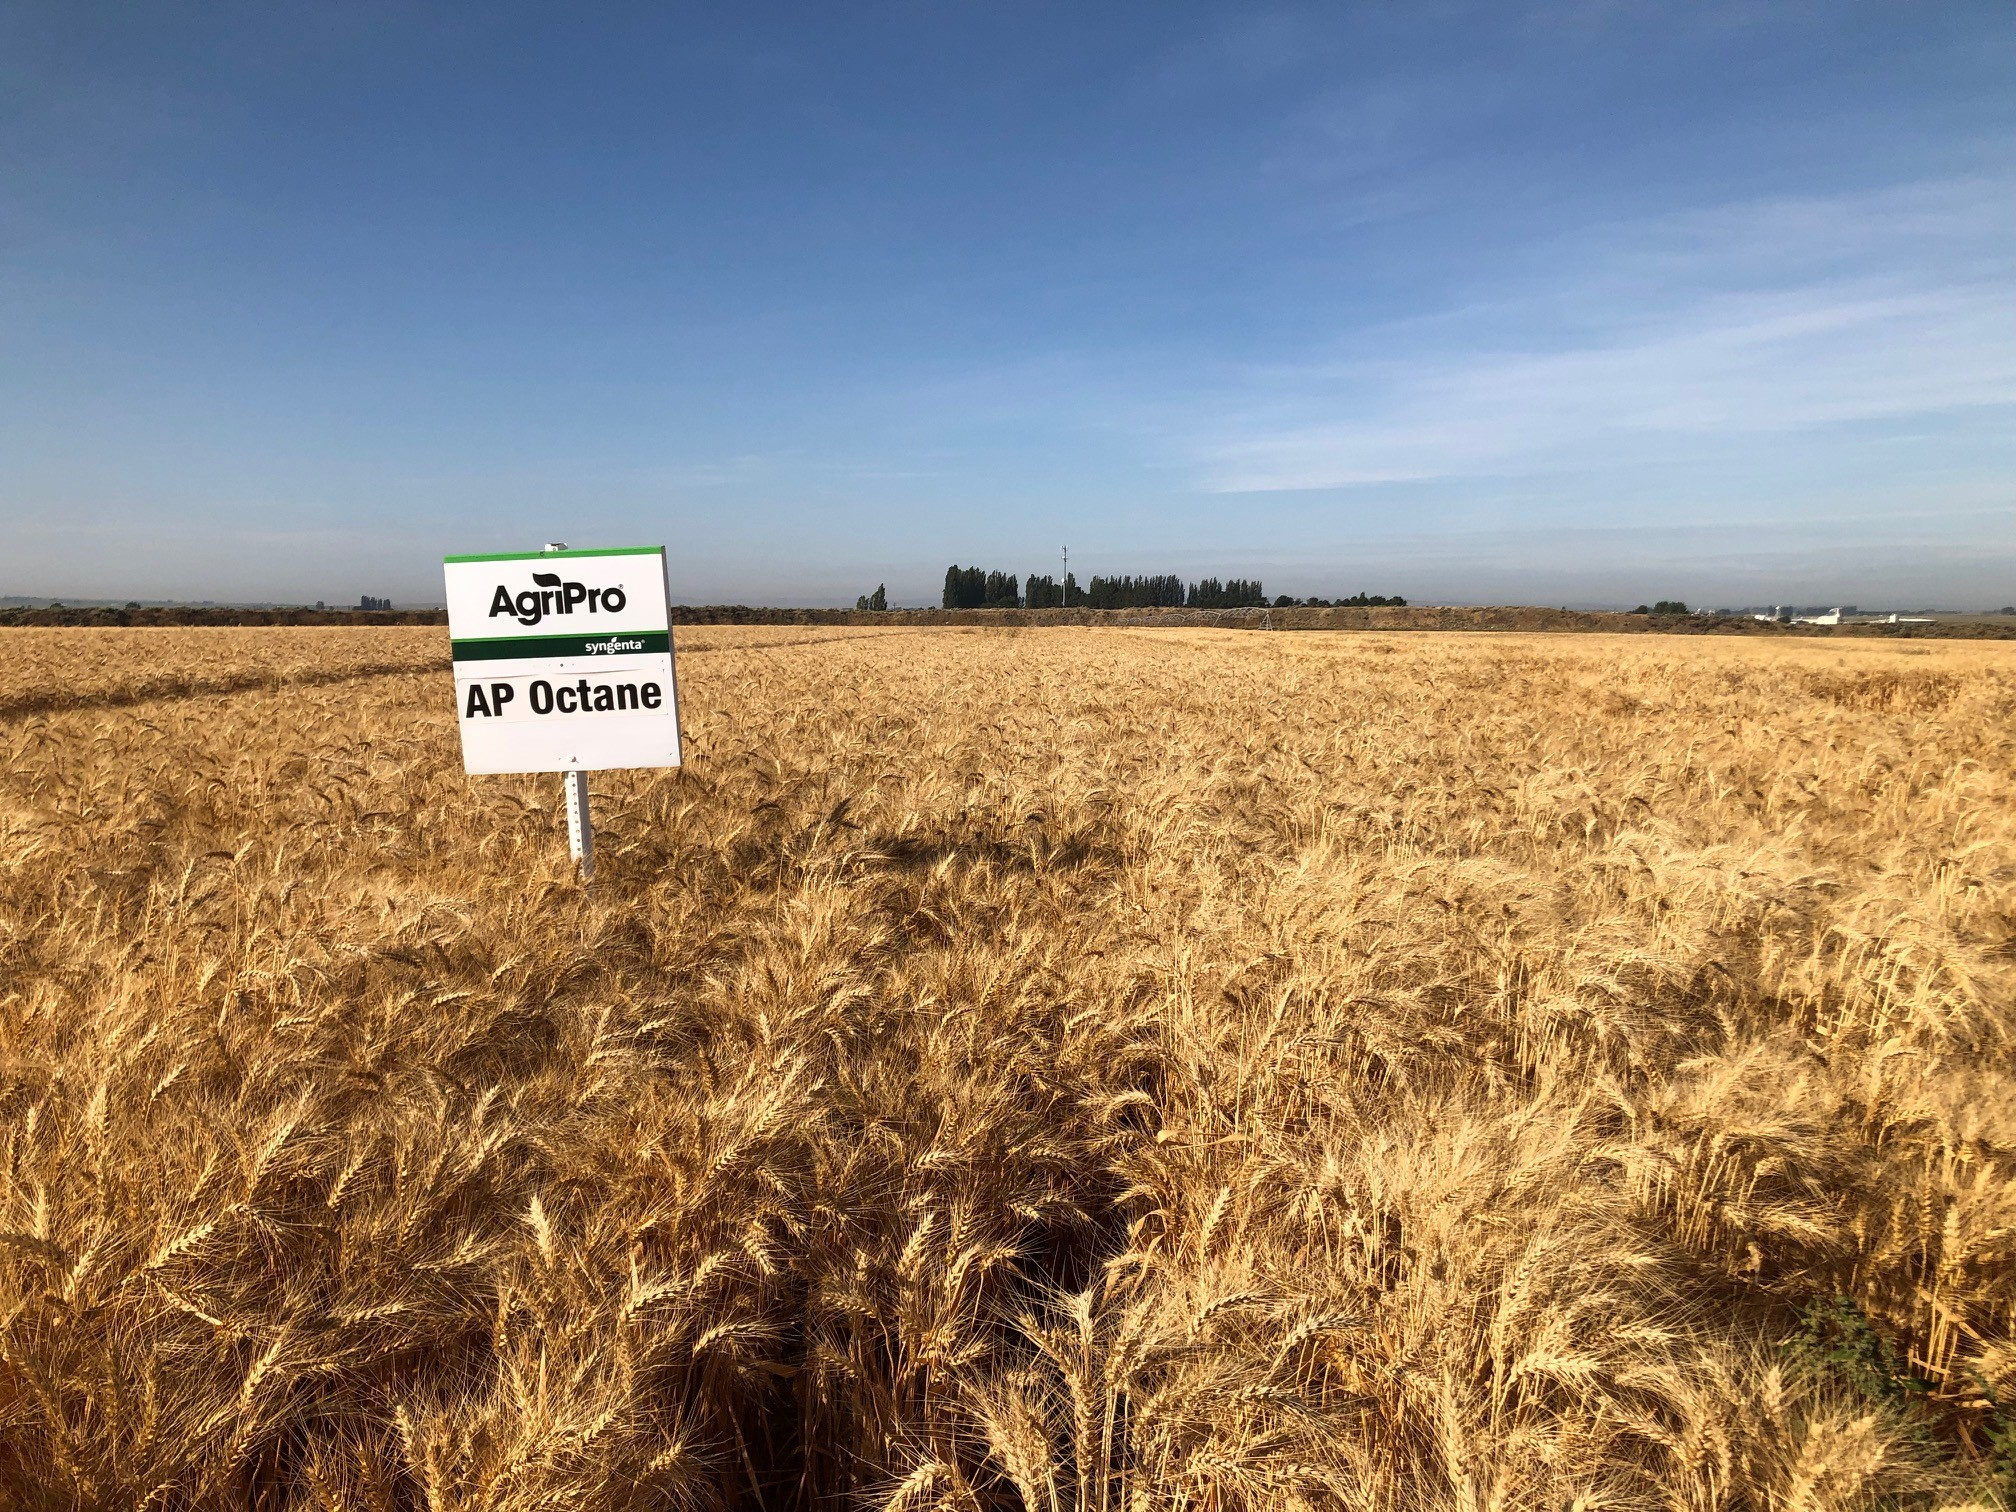 Shows an AgriPro spring wheat variety growing in a field.